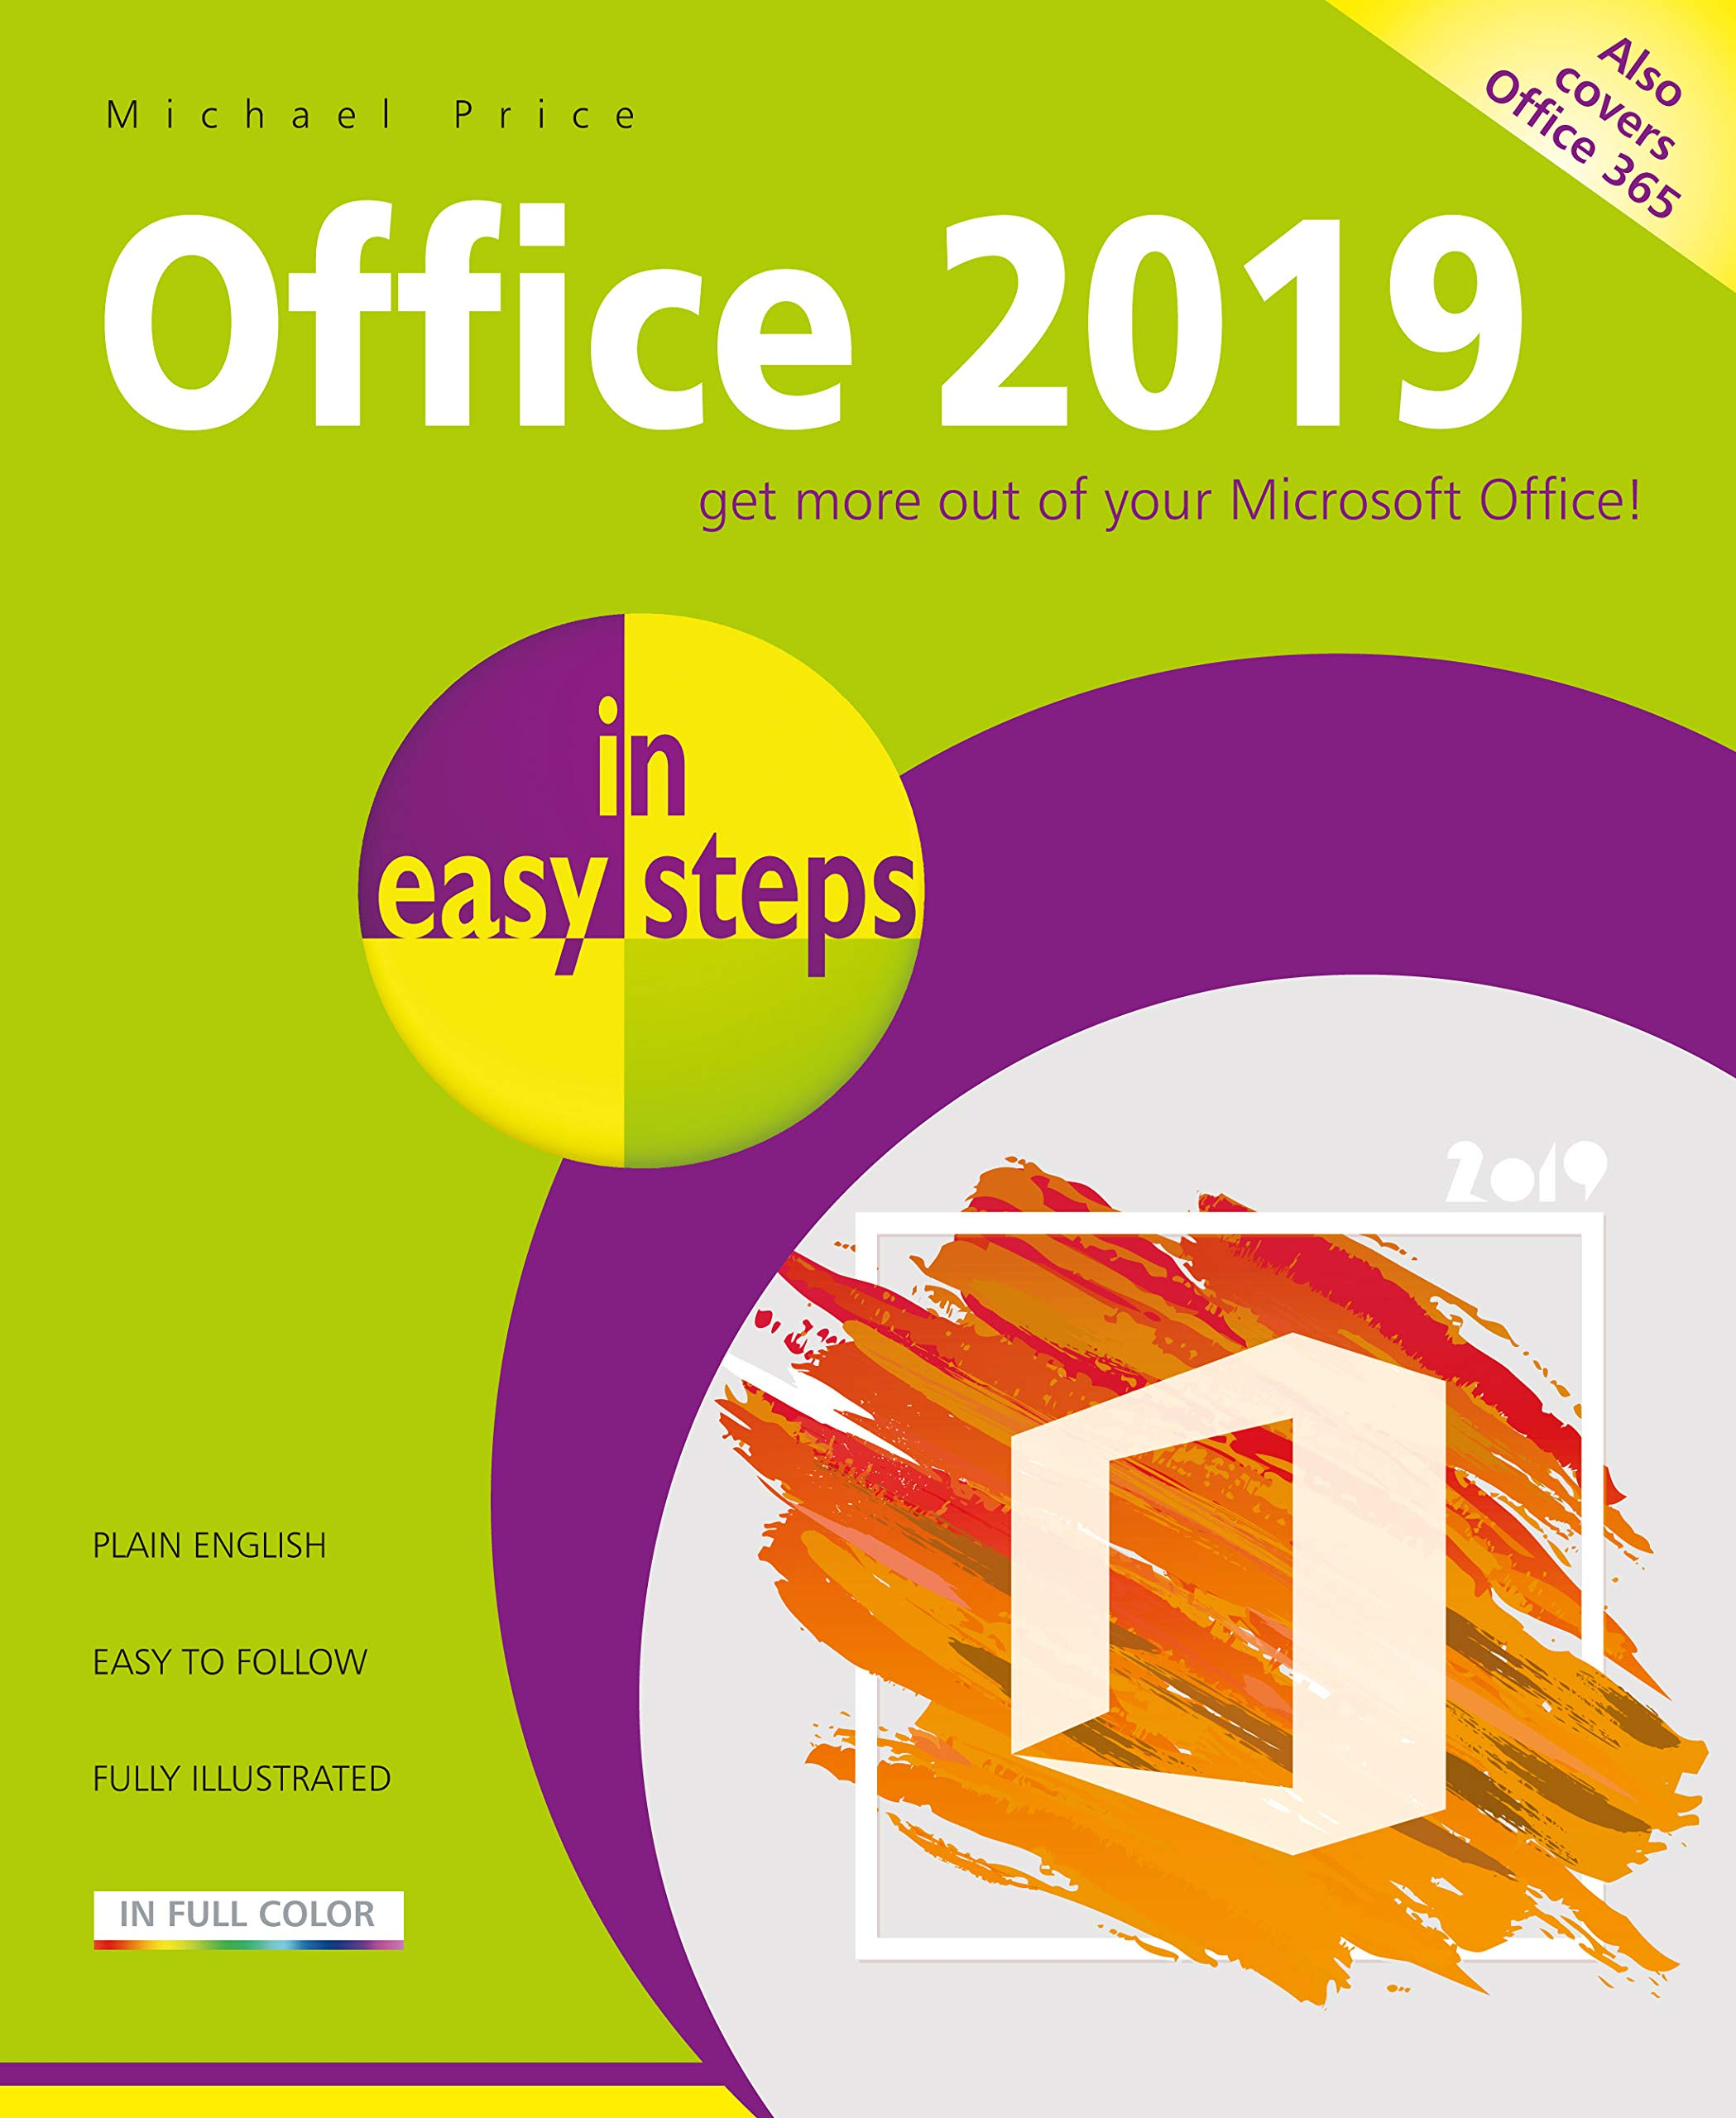 Amazon.com: Office 2019 in easy steps (9781840788204): Price, Michael: Books